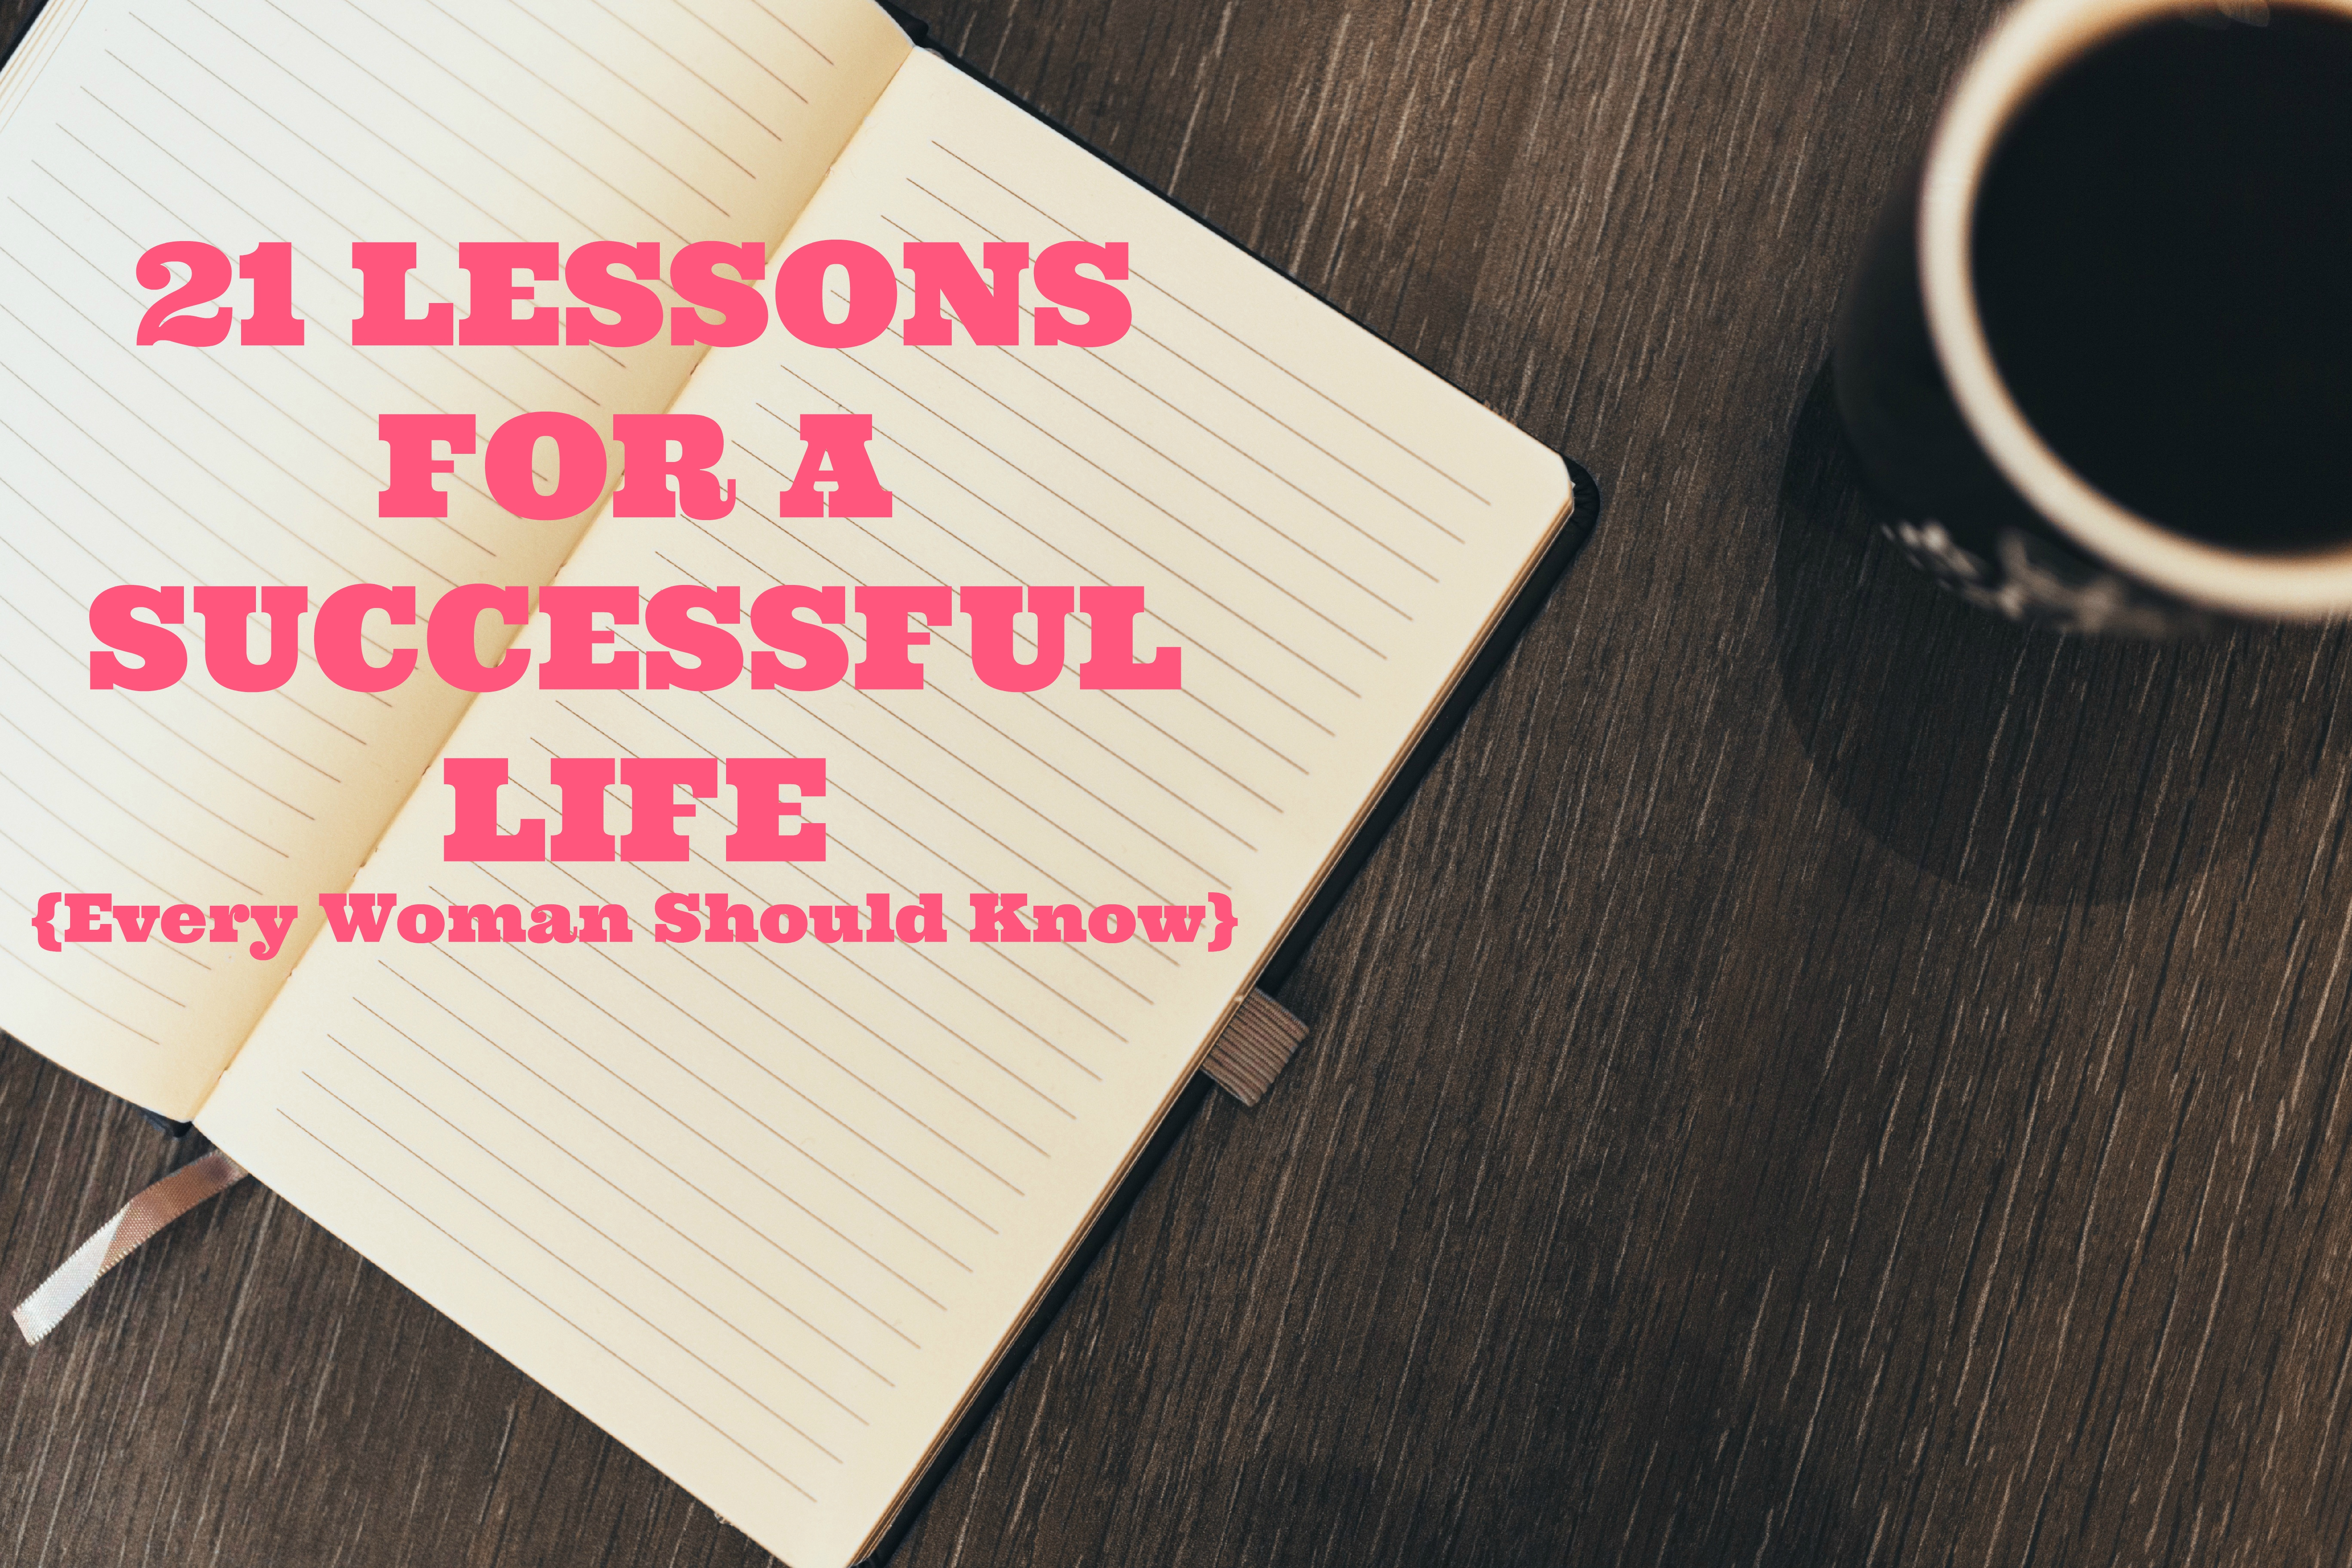 21 lessons title